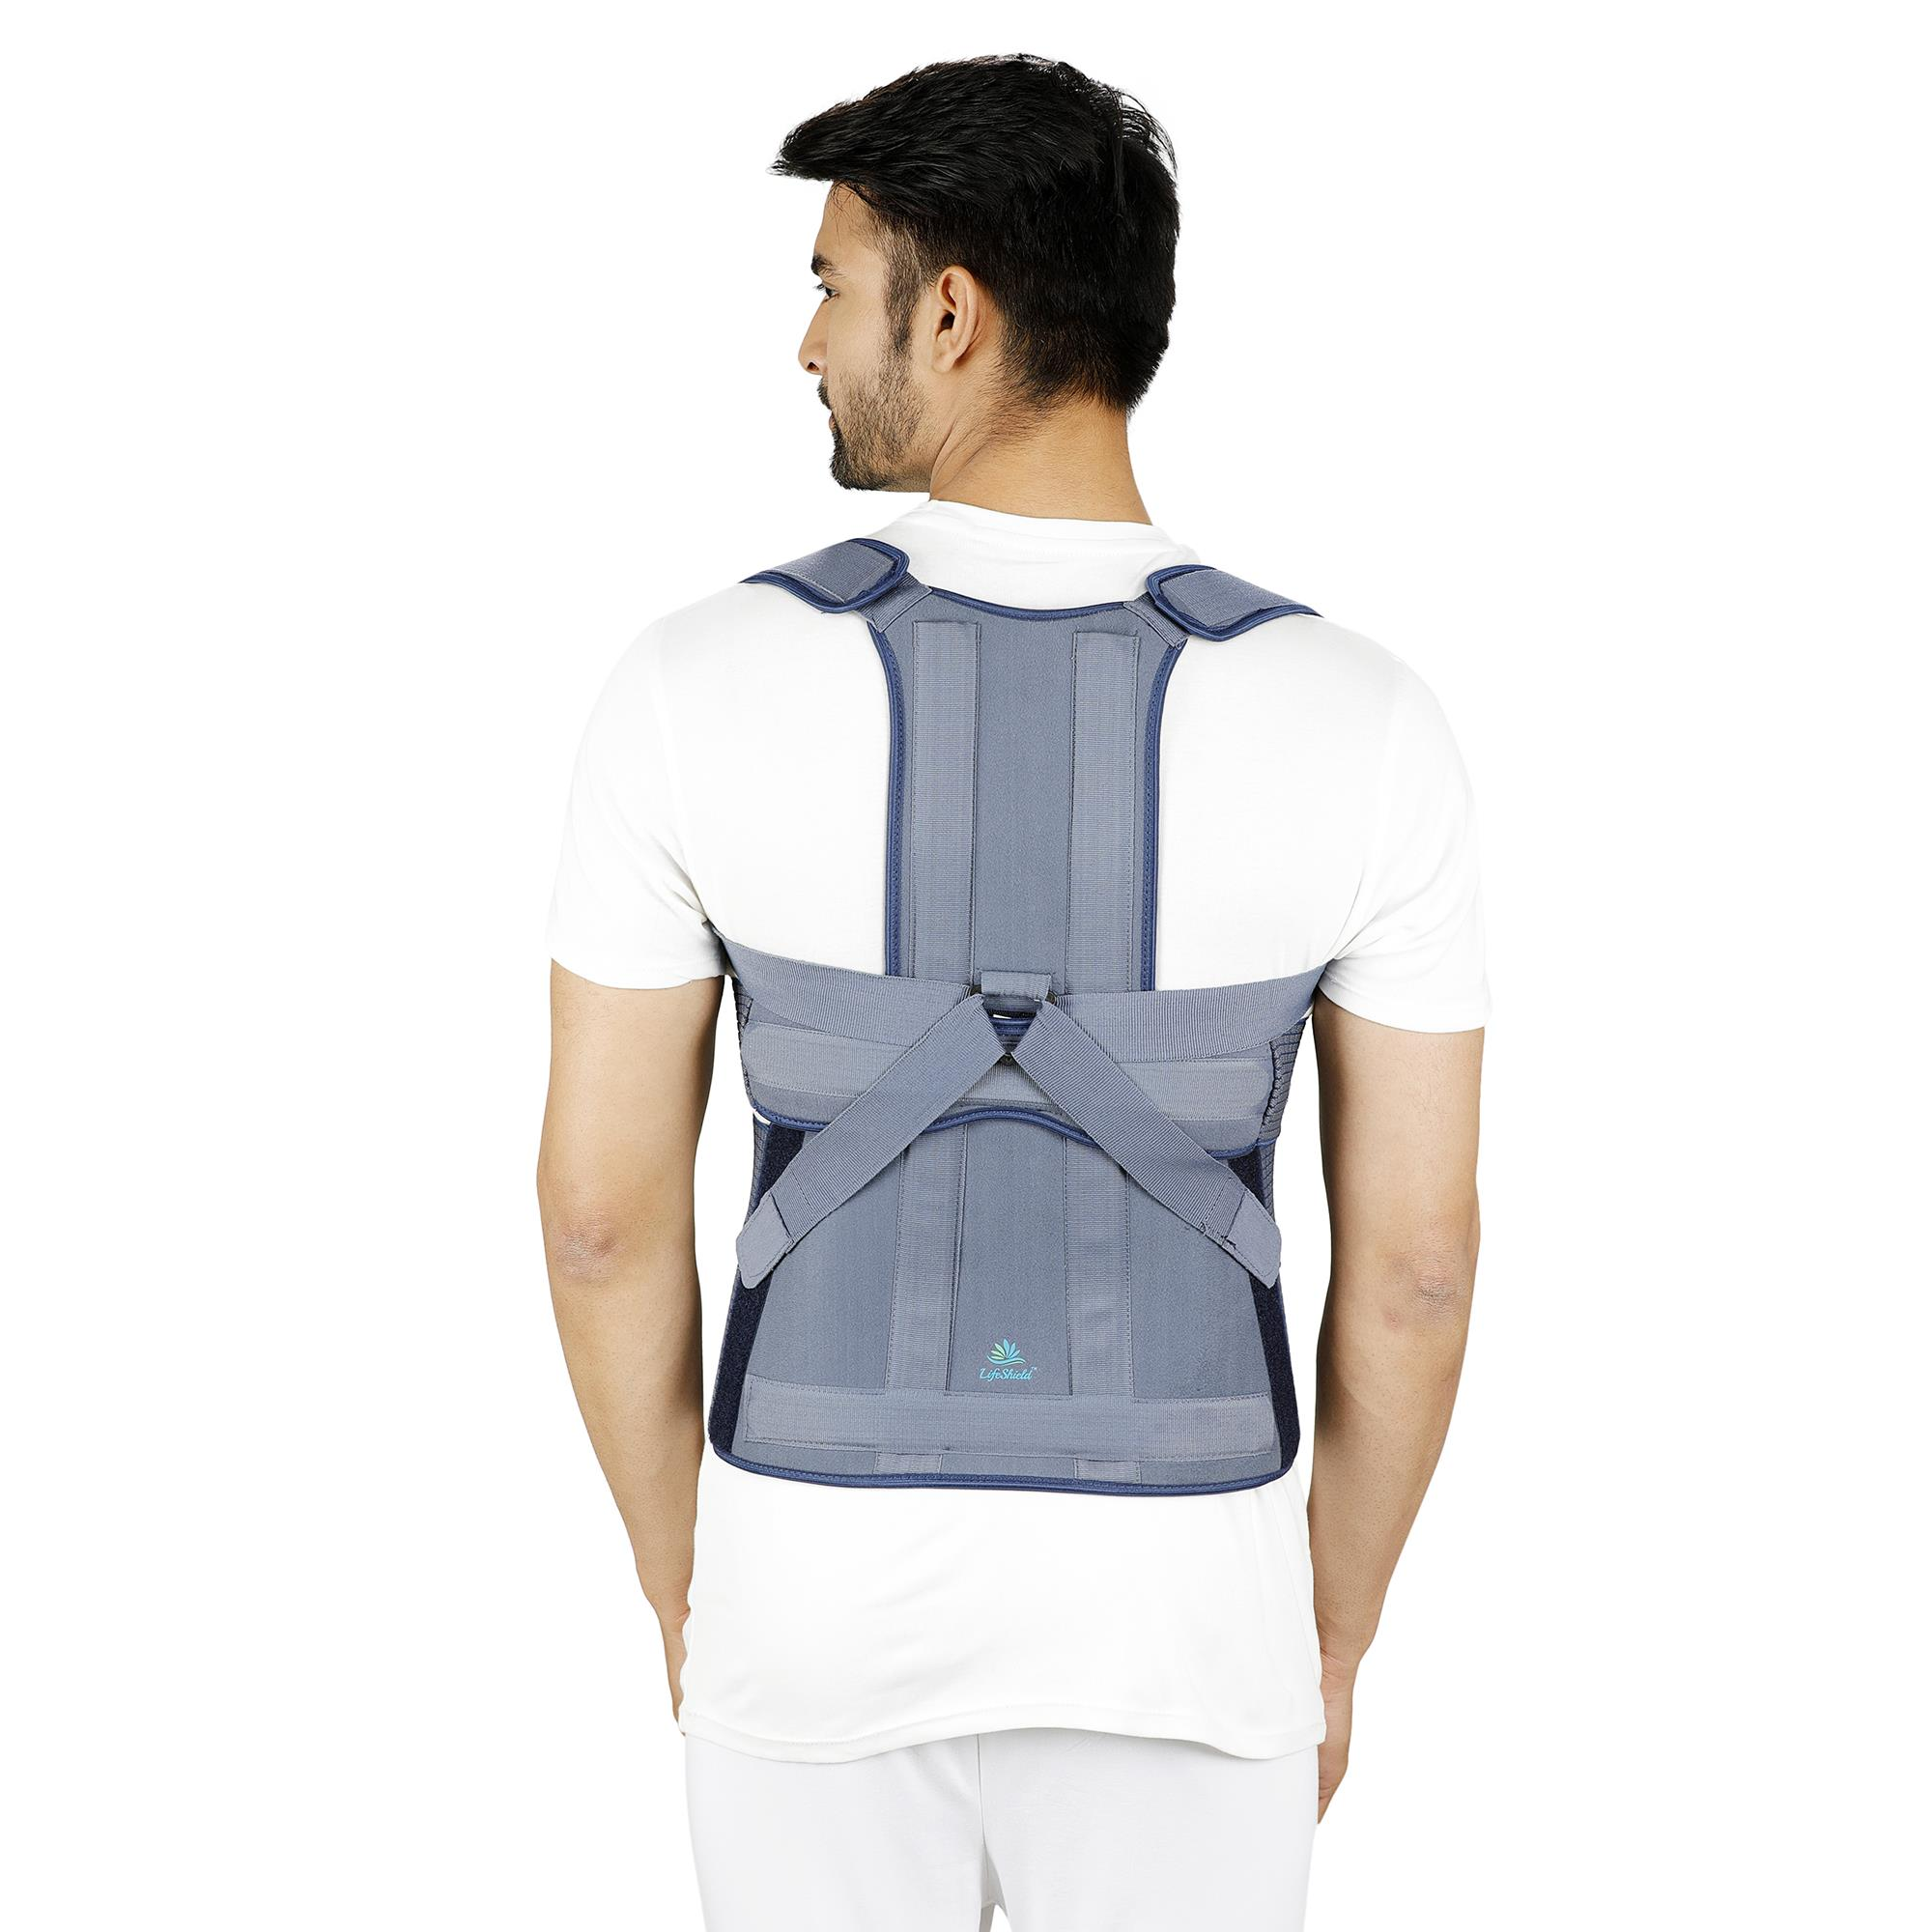 Lifeshield Taylor's Spine Brace: Supports You In Fracture Or Pain In Dorso Lumbar Spine Via Rigid Aluminium Splints (Long, Special)